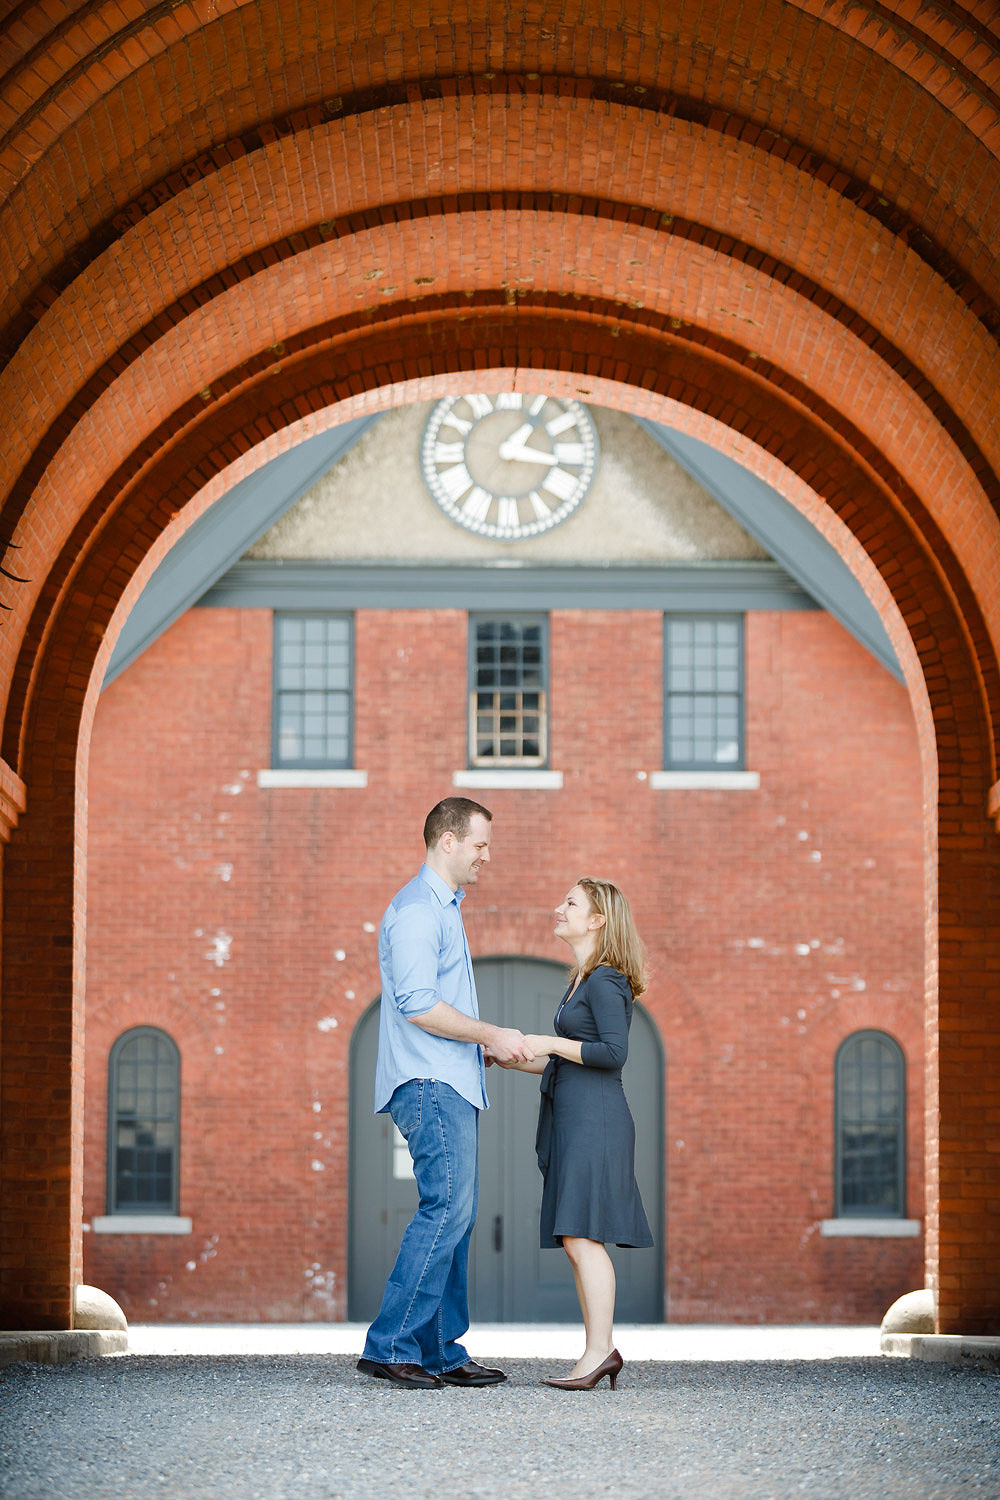 A couple poses under the brick arch of a building at Shelburne Farms during an engagement session